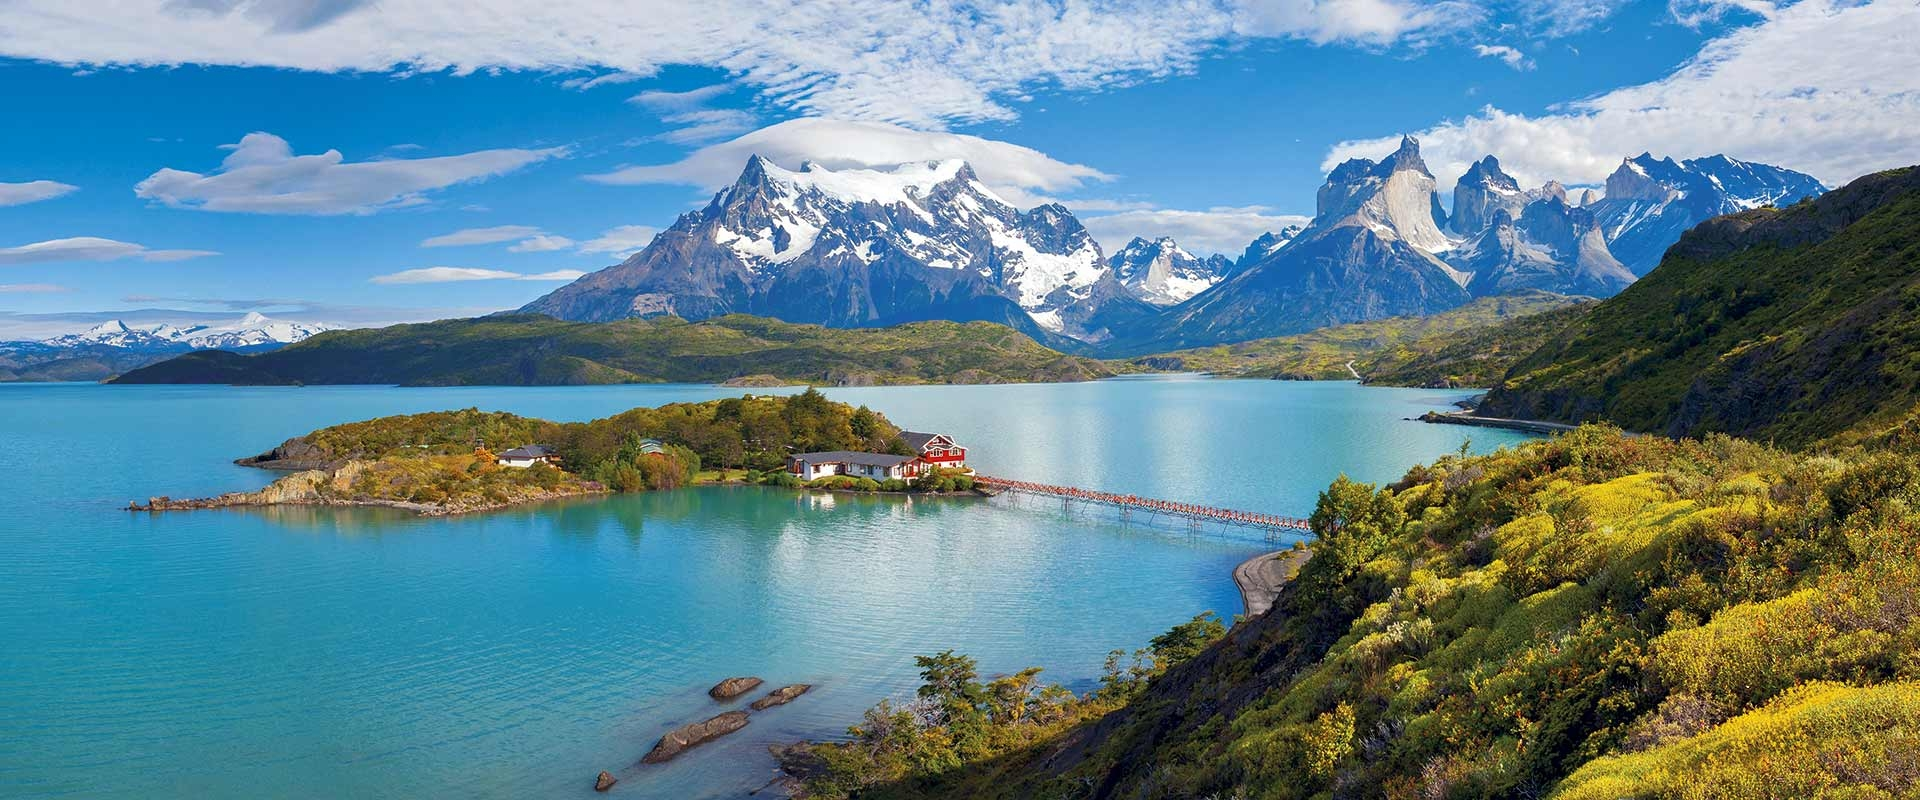 Patagonia South America >> Icons Of South America Patagonia